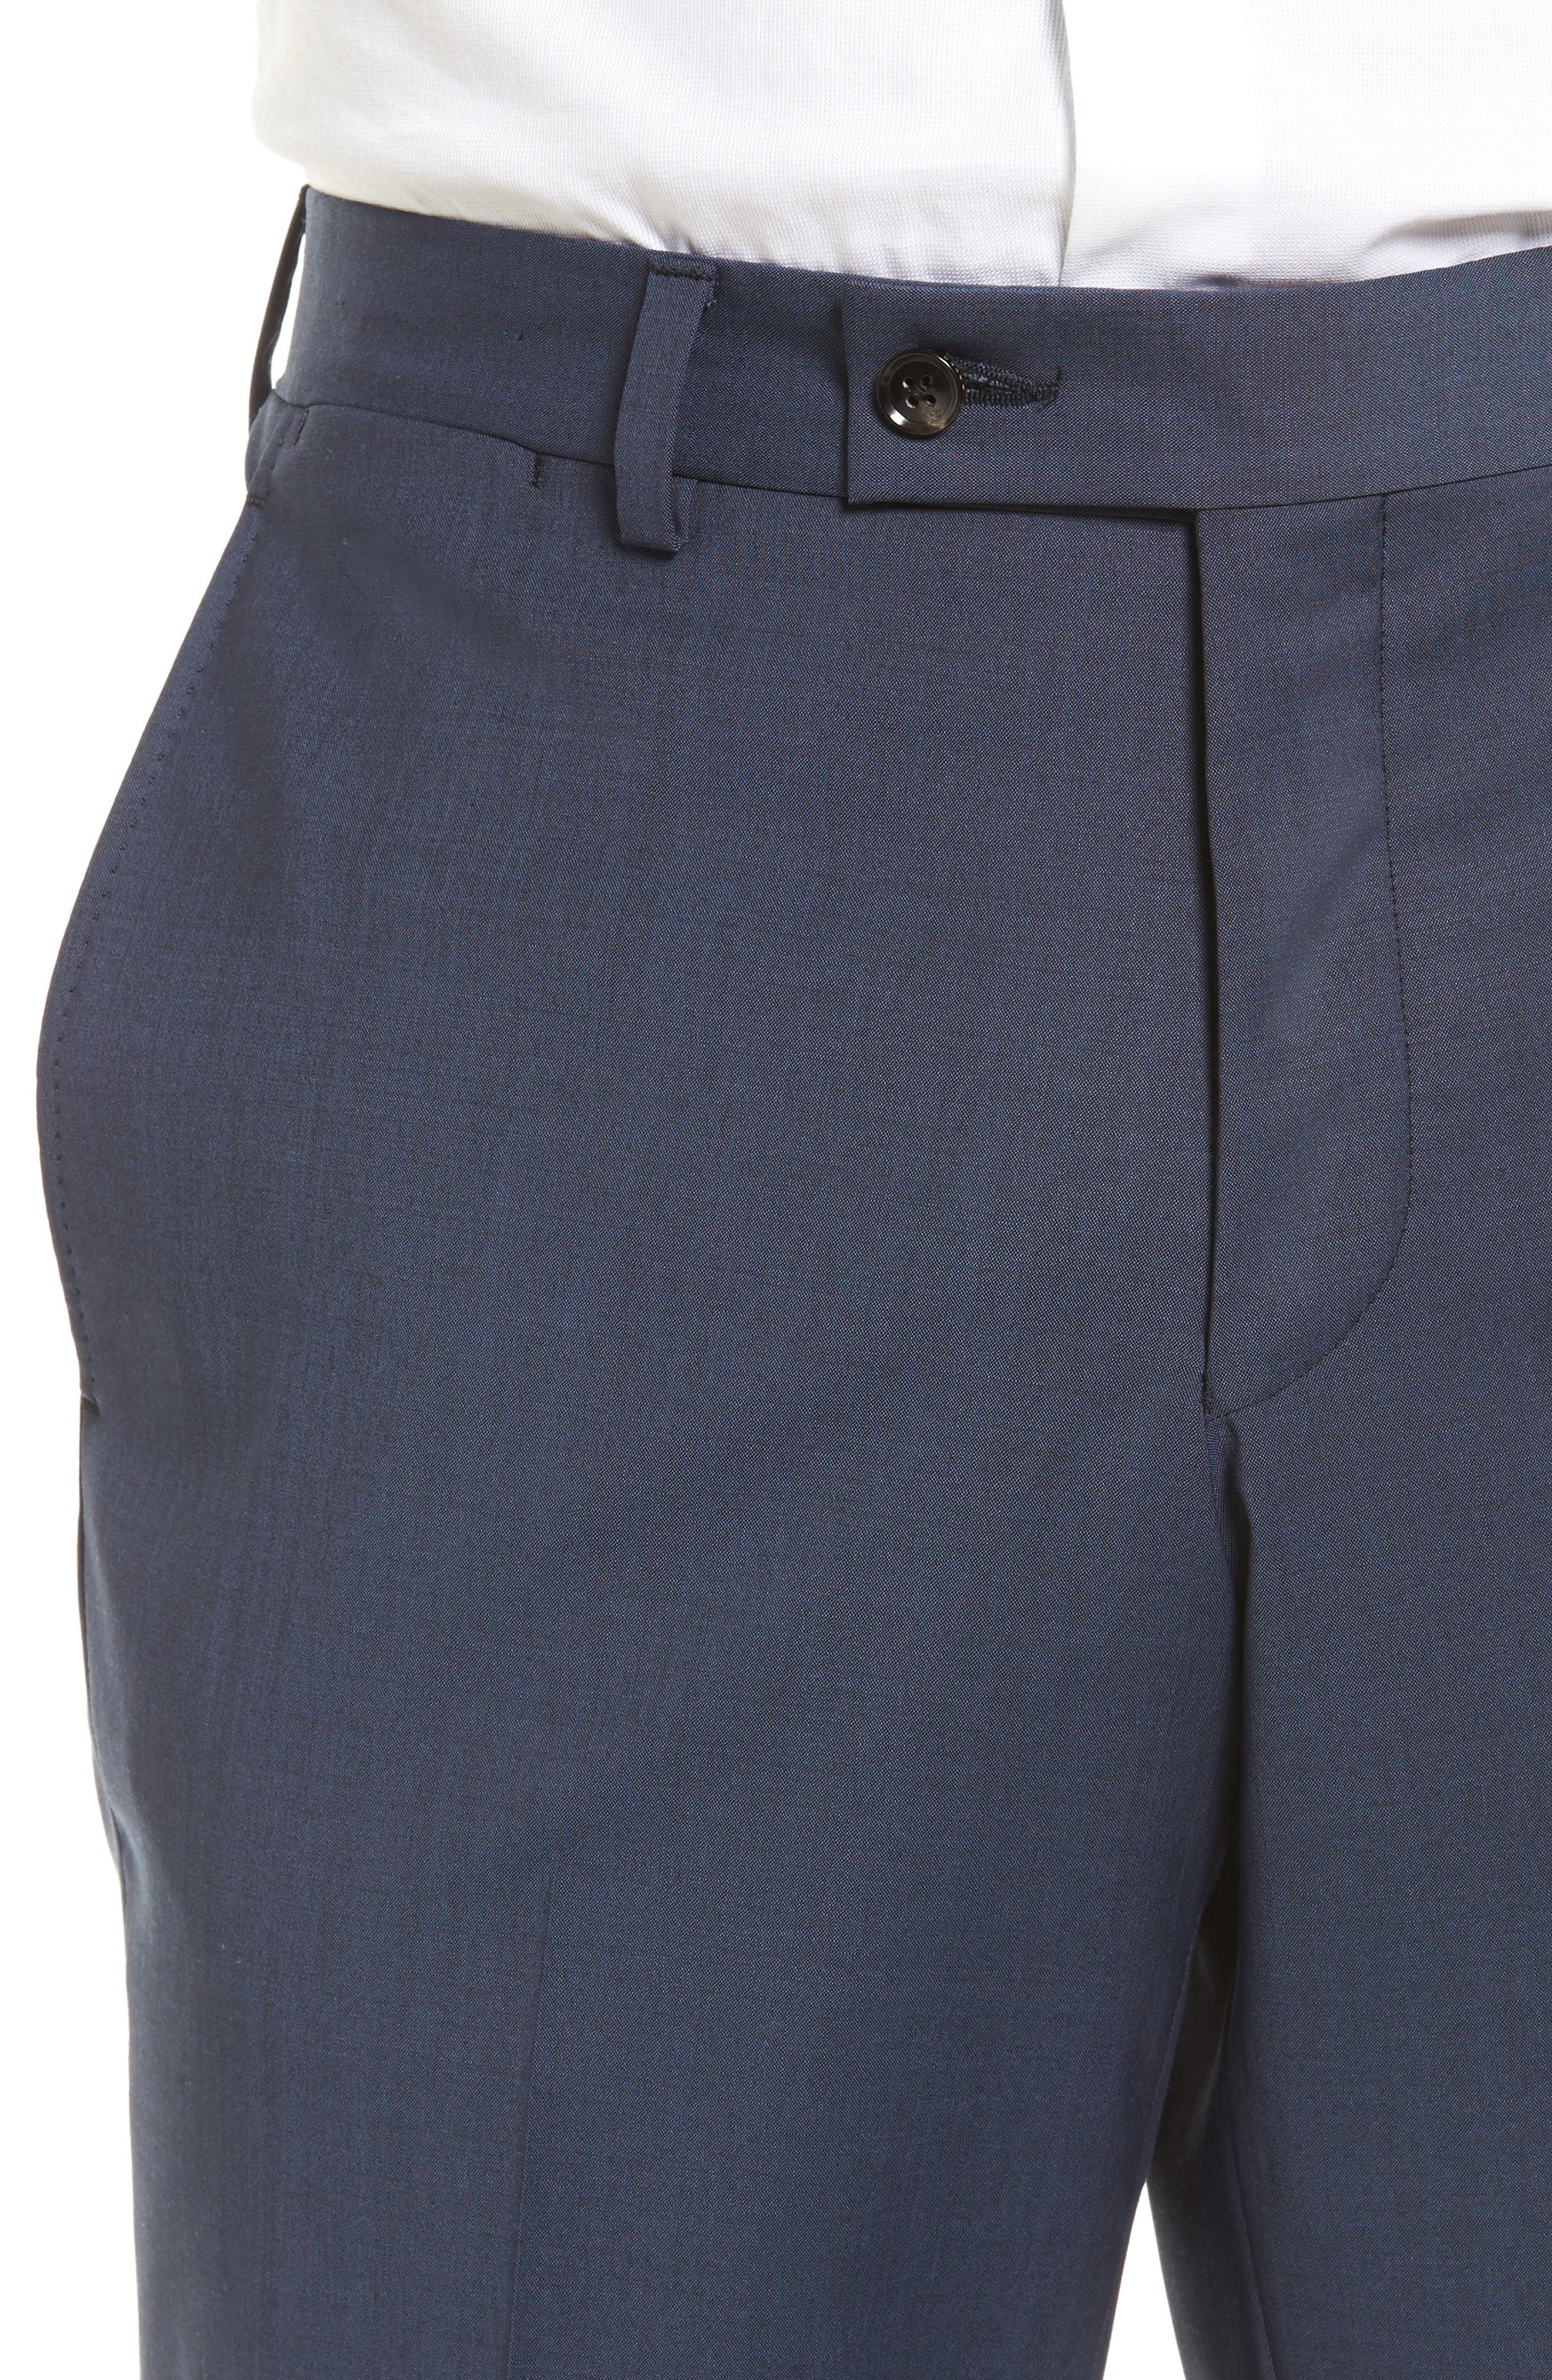 Jefferson Flat Front Stretch Wool Trousers,                             Alternate thumbnail 4, color,                             Blue